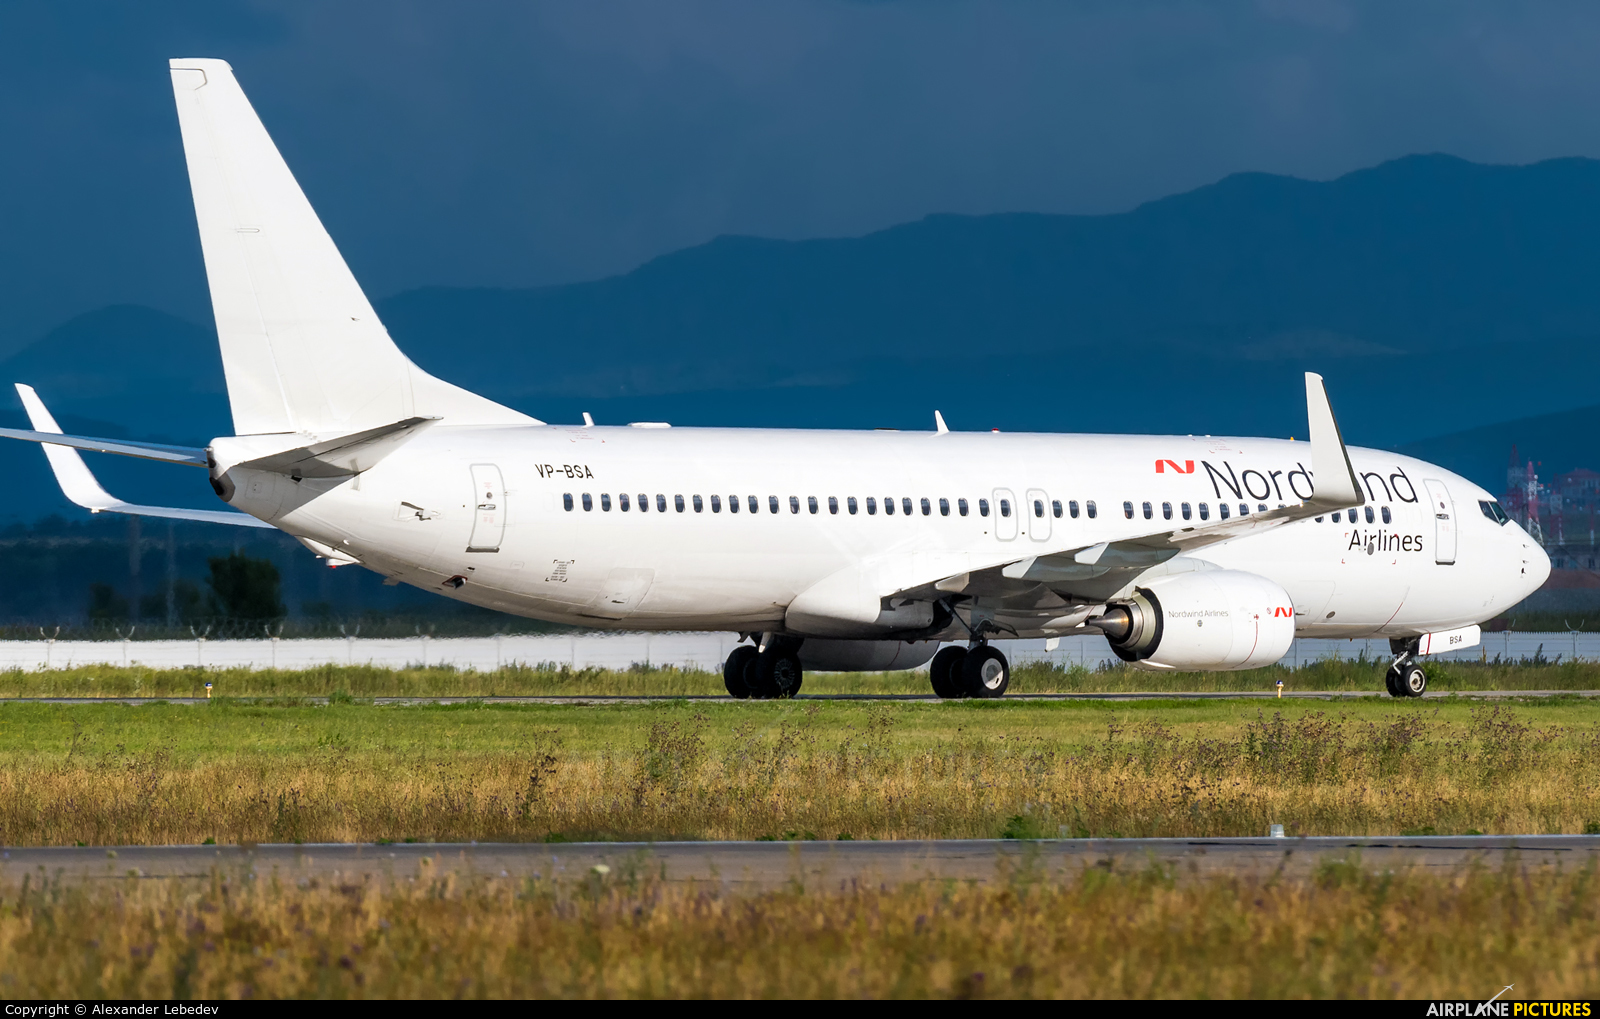 Nordwind Airlines VP-BSA aircraft at Undisclosed Location